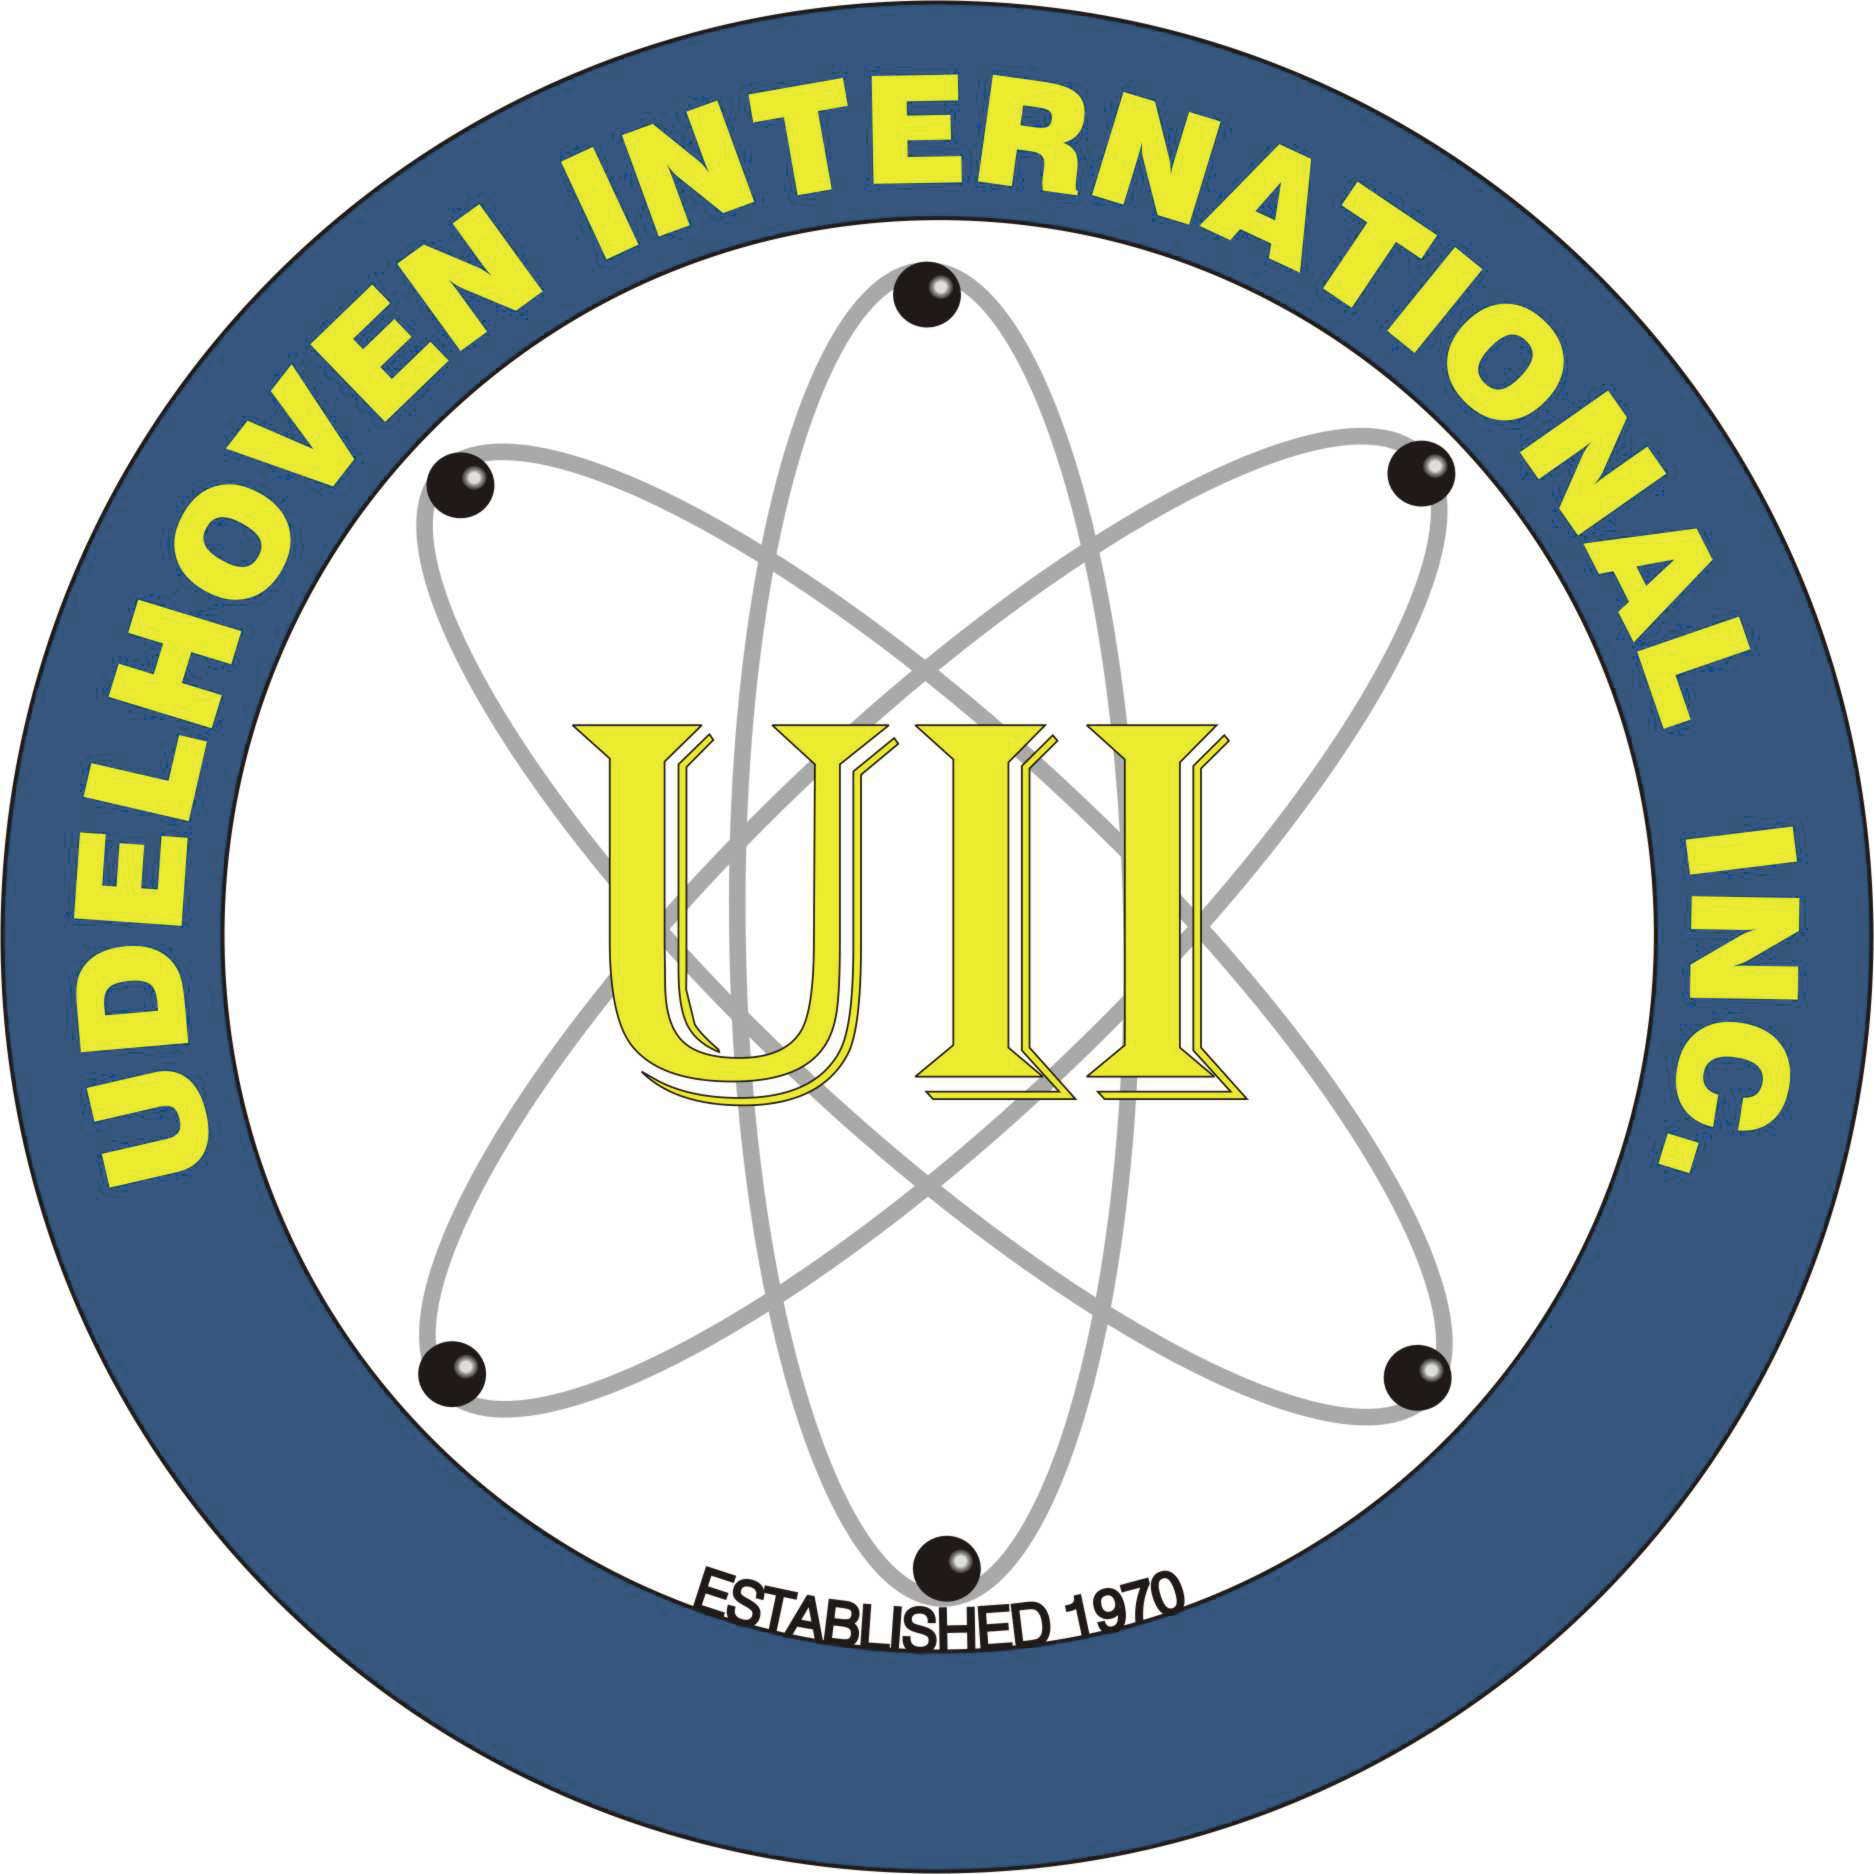 Udelhoven International Inc provides full-service expertise for international projects, including project managers, project control, planning and scheduling, quality control and assurance, commissioning, and startup support.